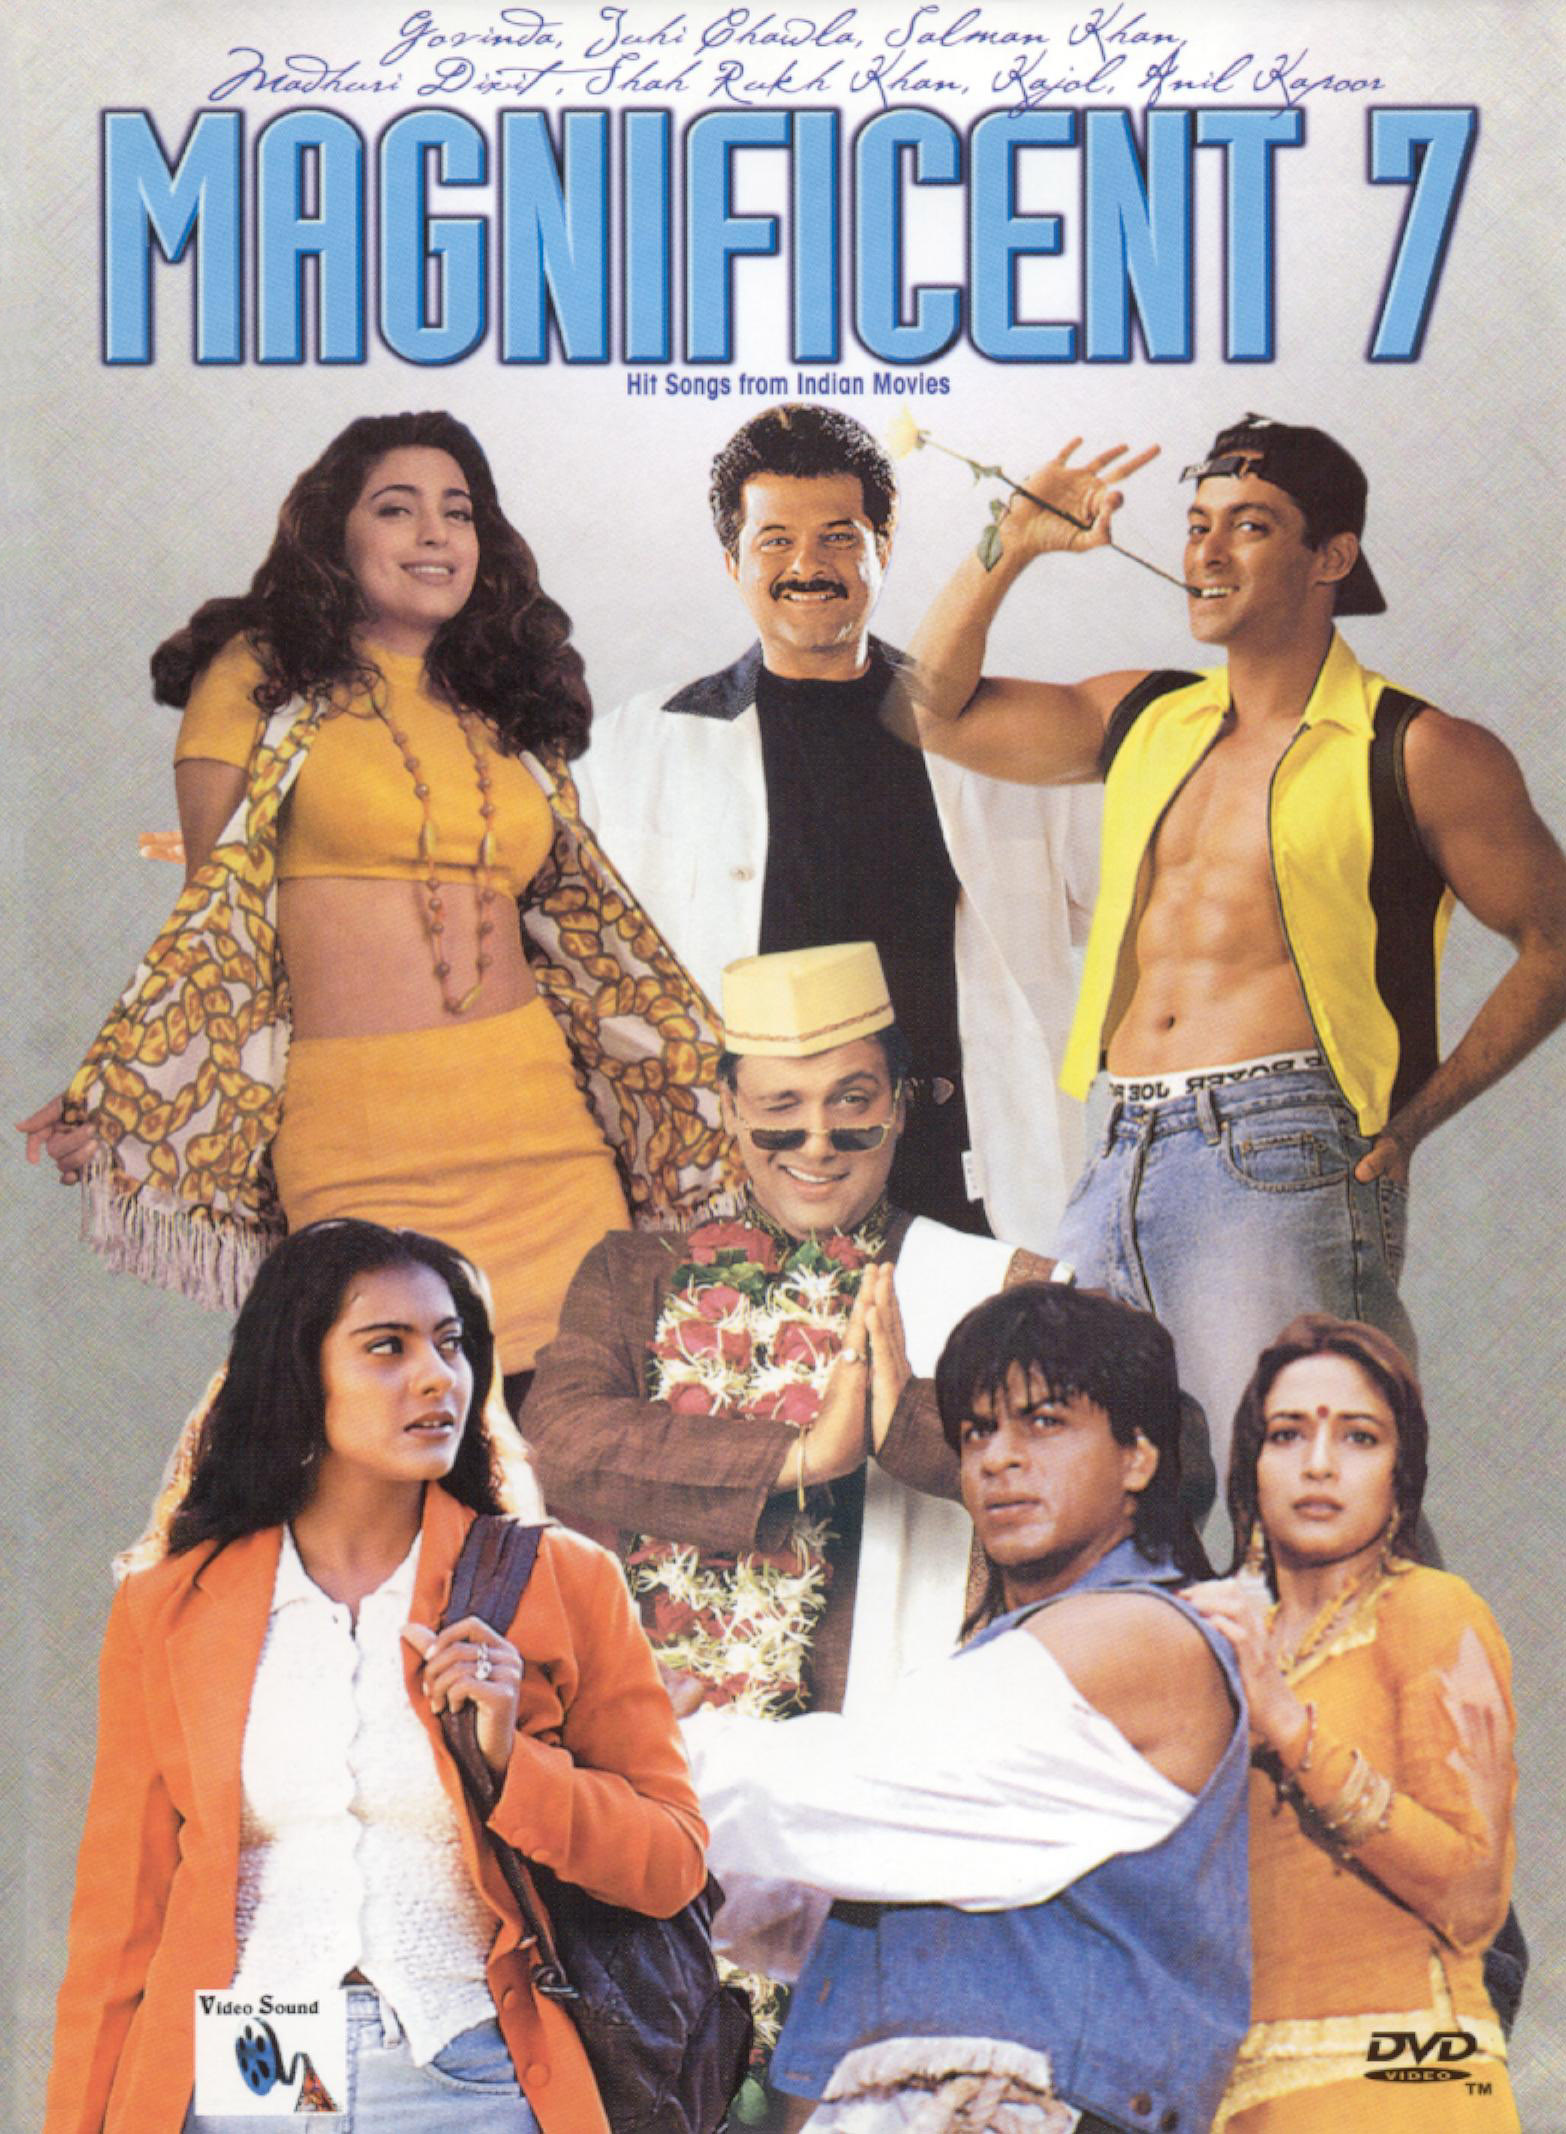 Magnificent 7: Hit Songs From Indian Movies